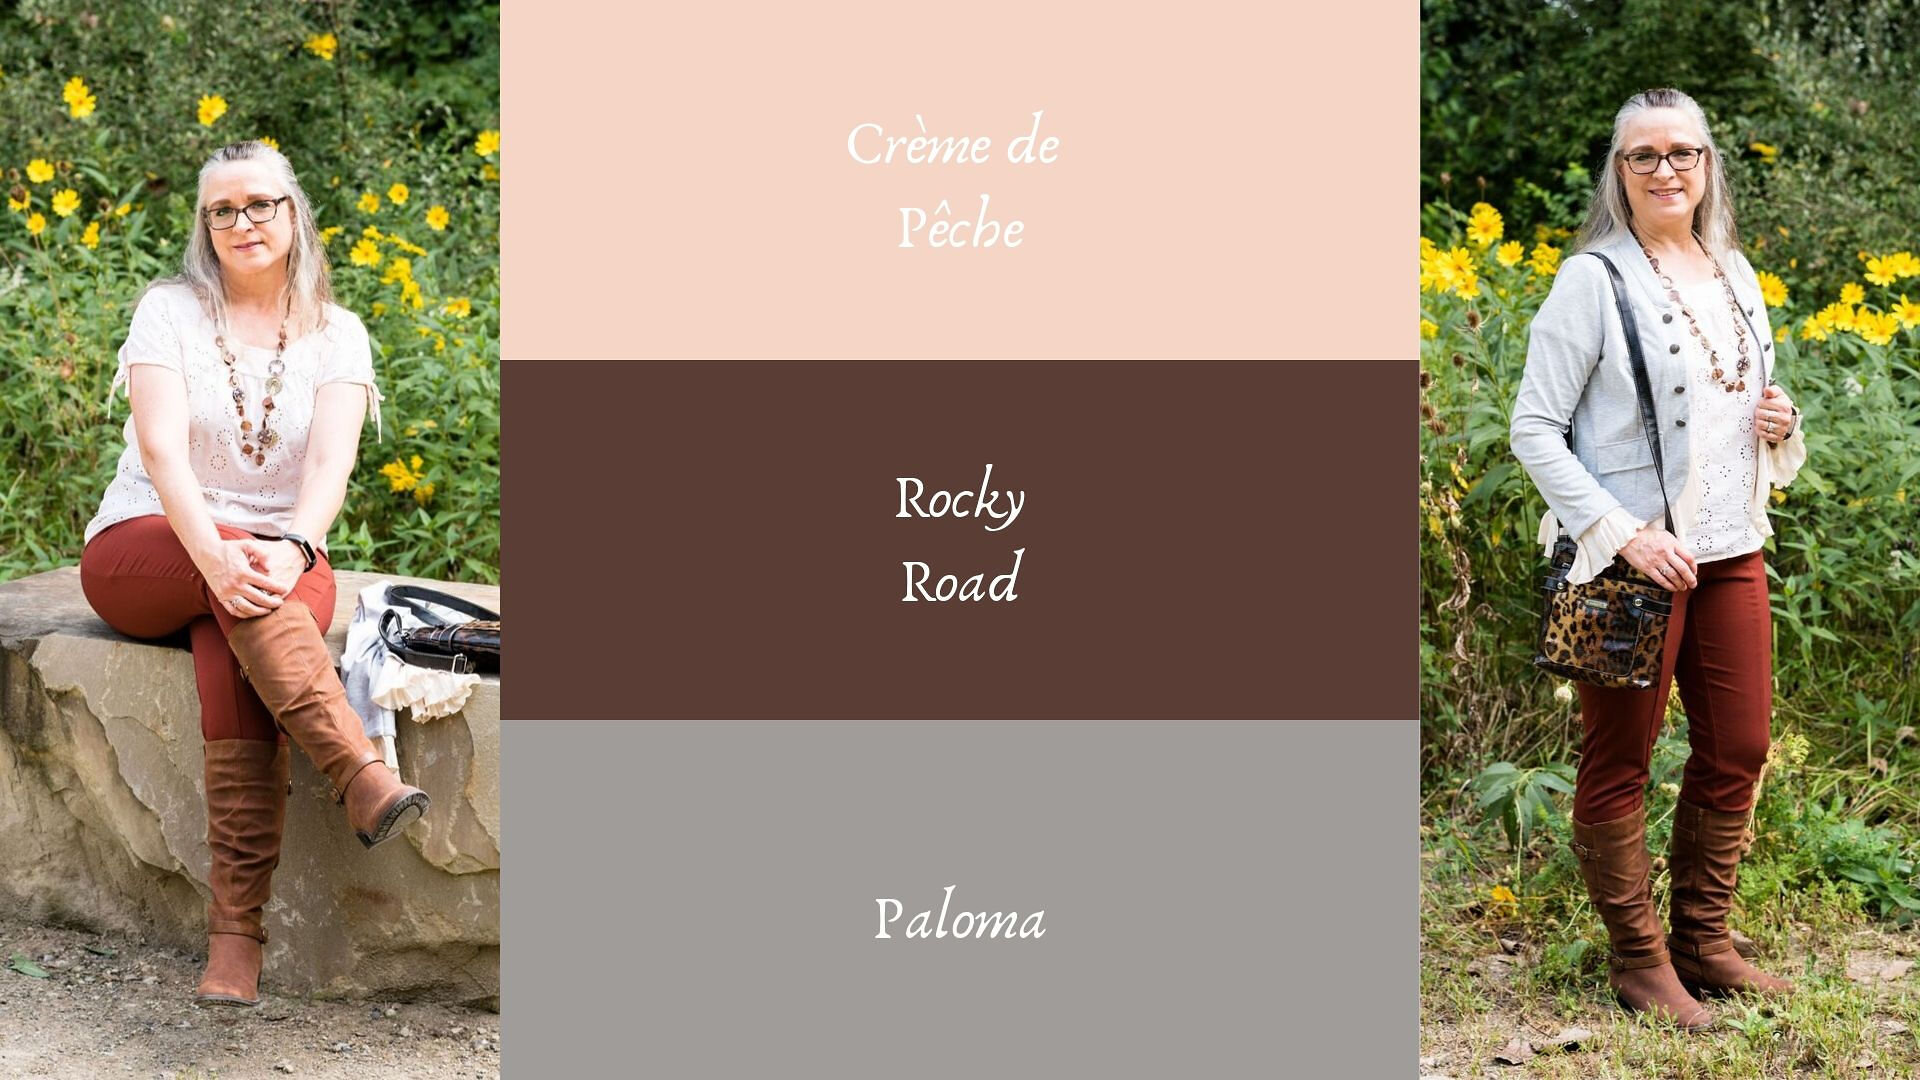 Pantone - Autumn/Winter - 2019 - Creme de Peche and Rocky road